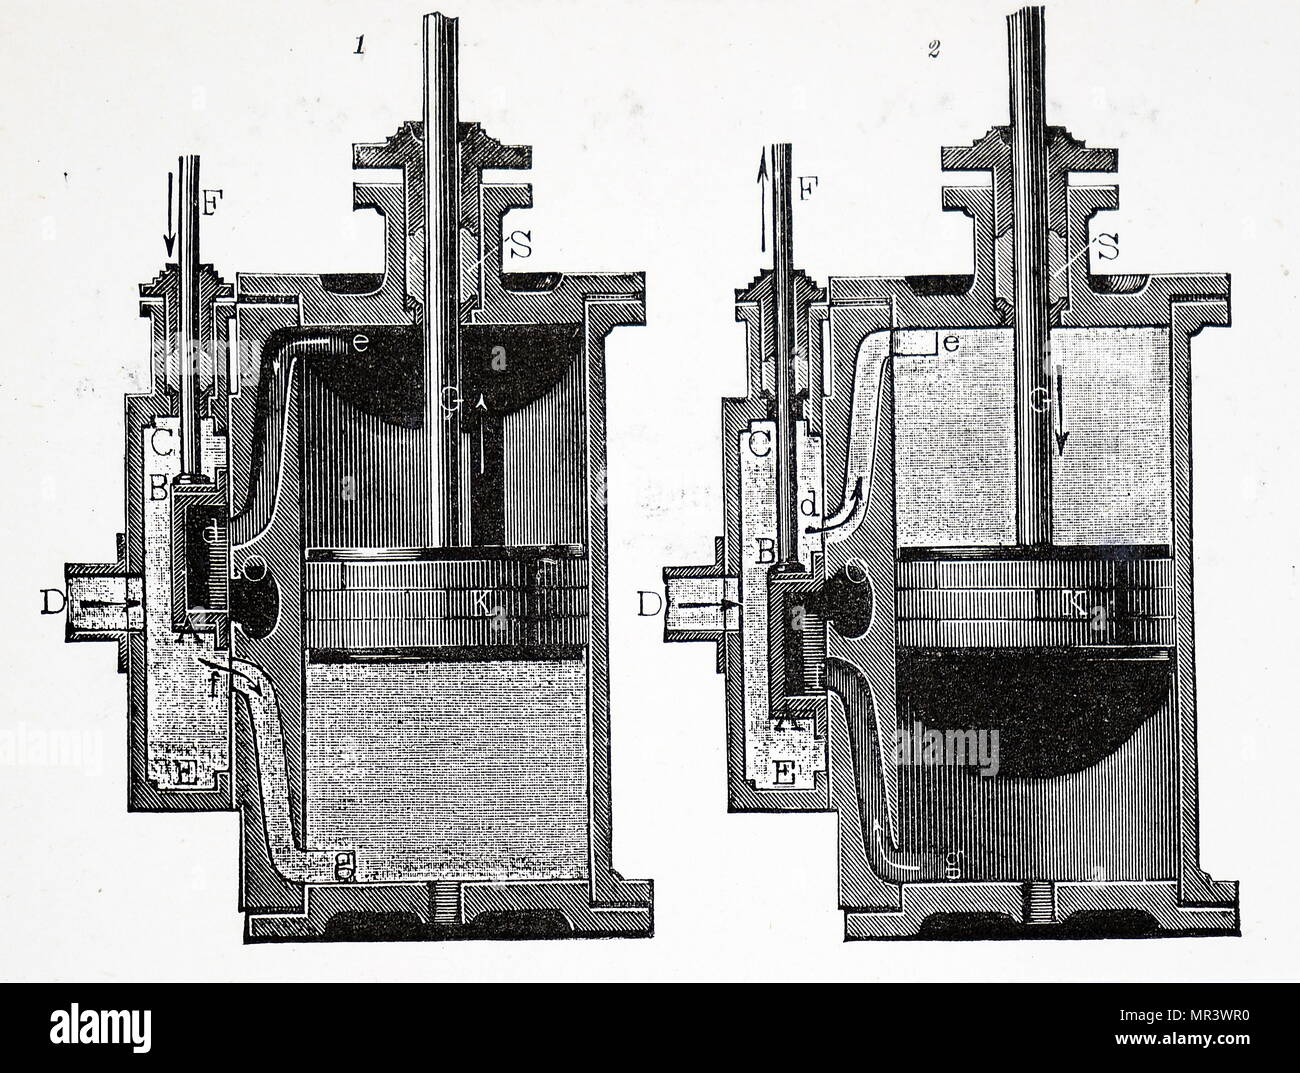 Illustration depicting a cylinder and valve chest. Dated 19th century - Stock Image